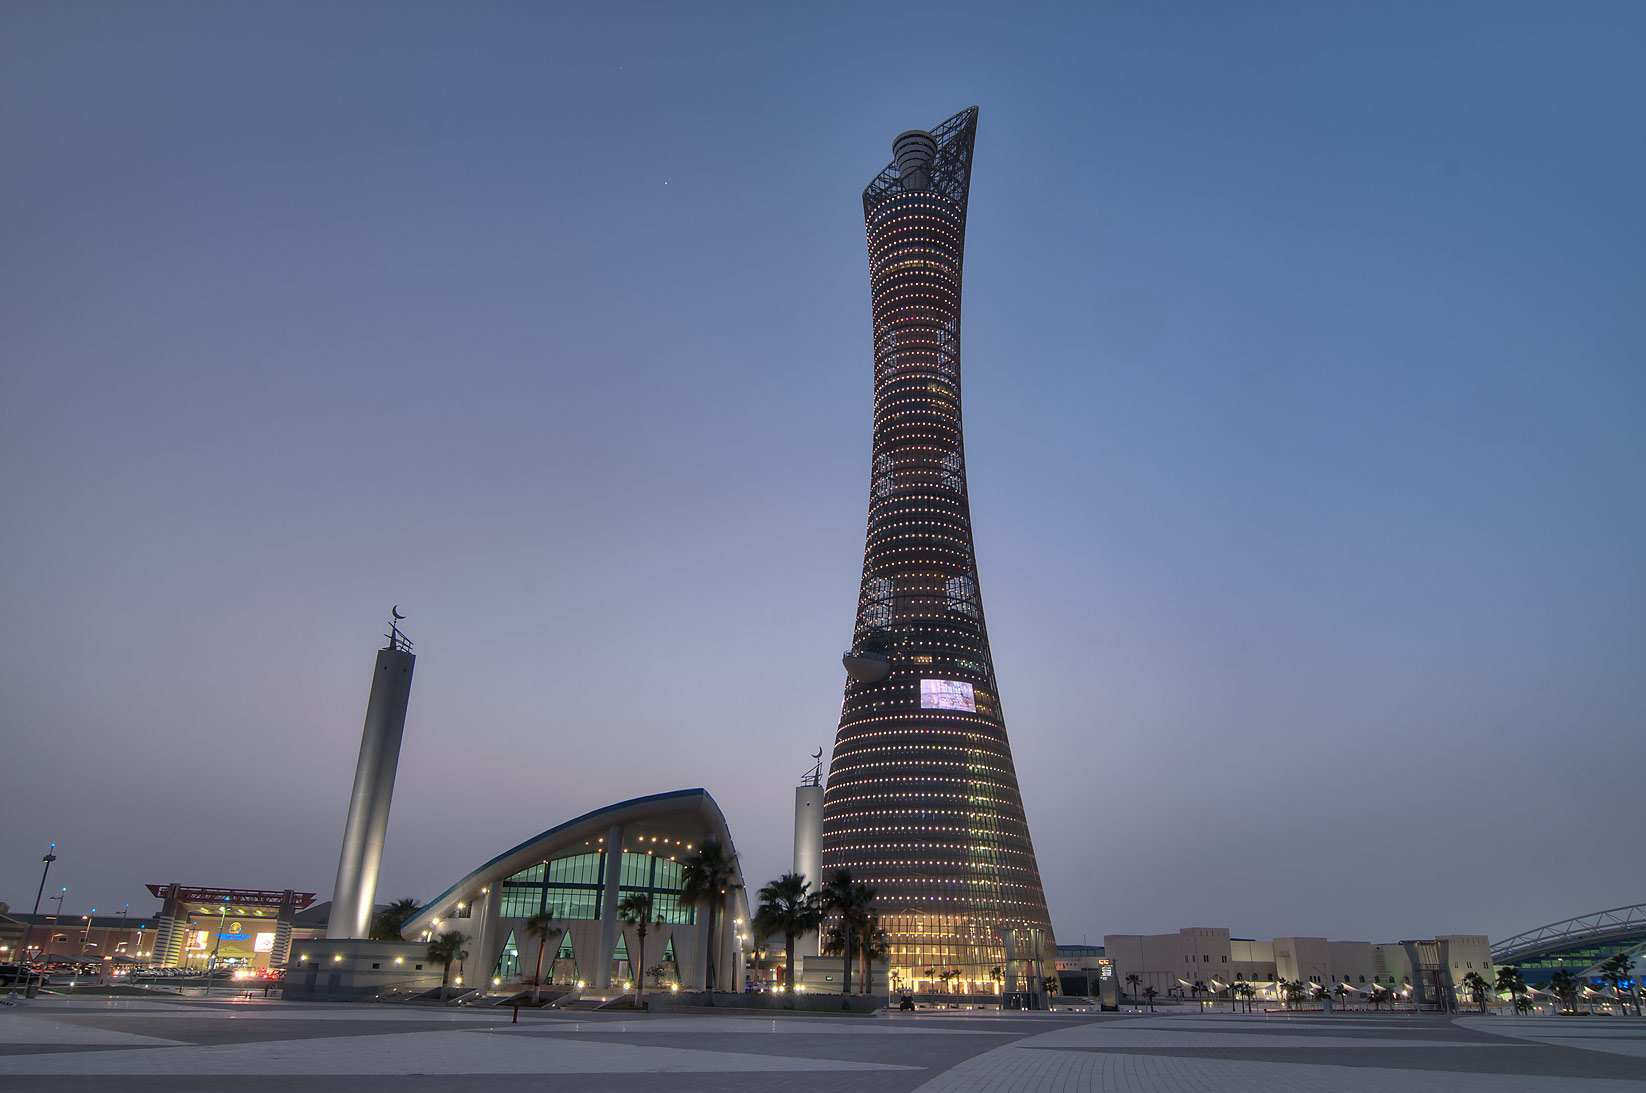 Torch Hotel and Aspire Mosque at evening. Doha, Qatar